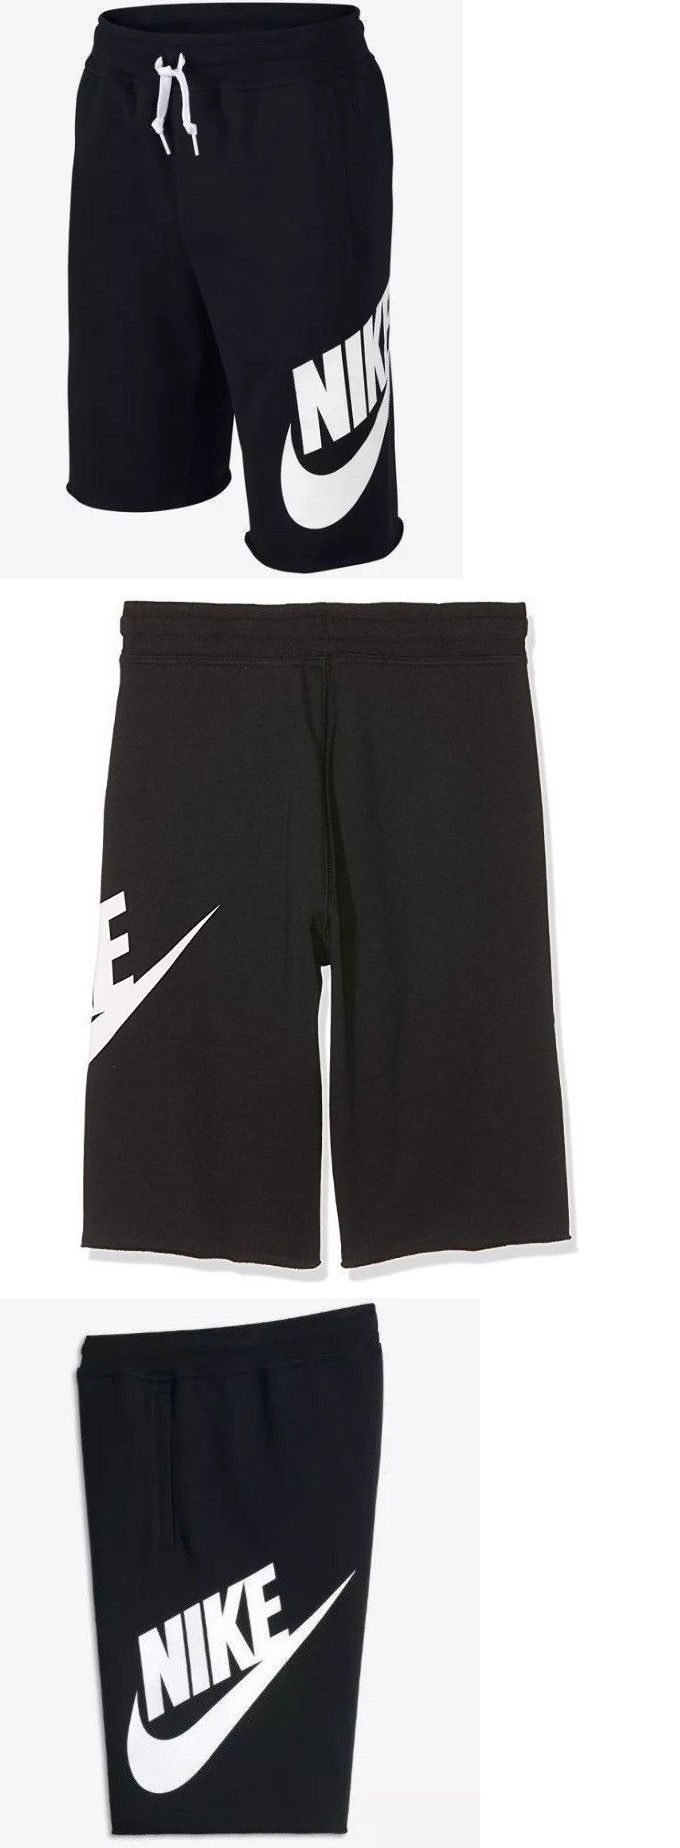 2f8881c67e Shorts 175655: Nike Big Kids Sportswear French Terry Alumni Shorts Black  728206-010 A -> BUY IT NOW ONLY: $19.99 on #eBay #shorts #sportswear #french  #terry ...